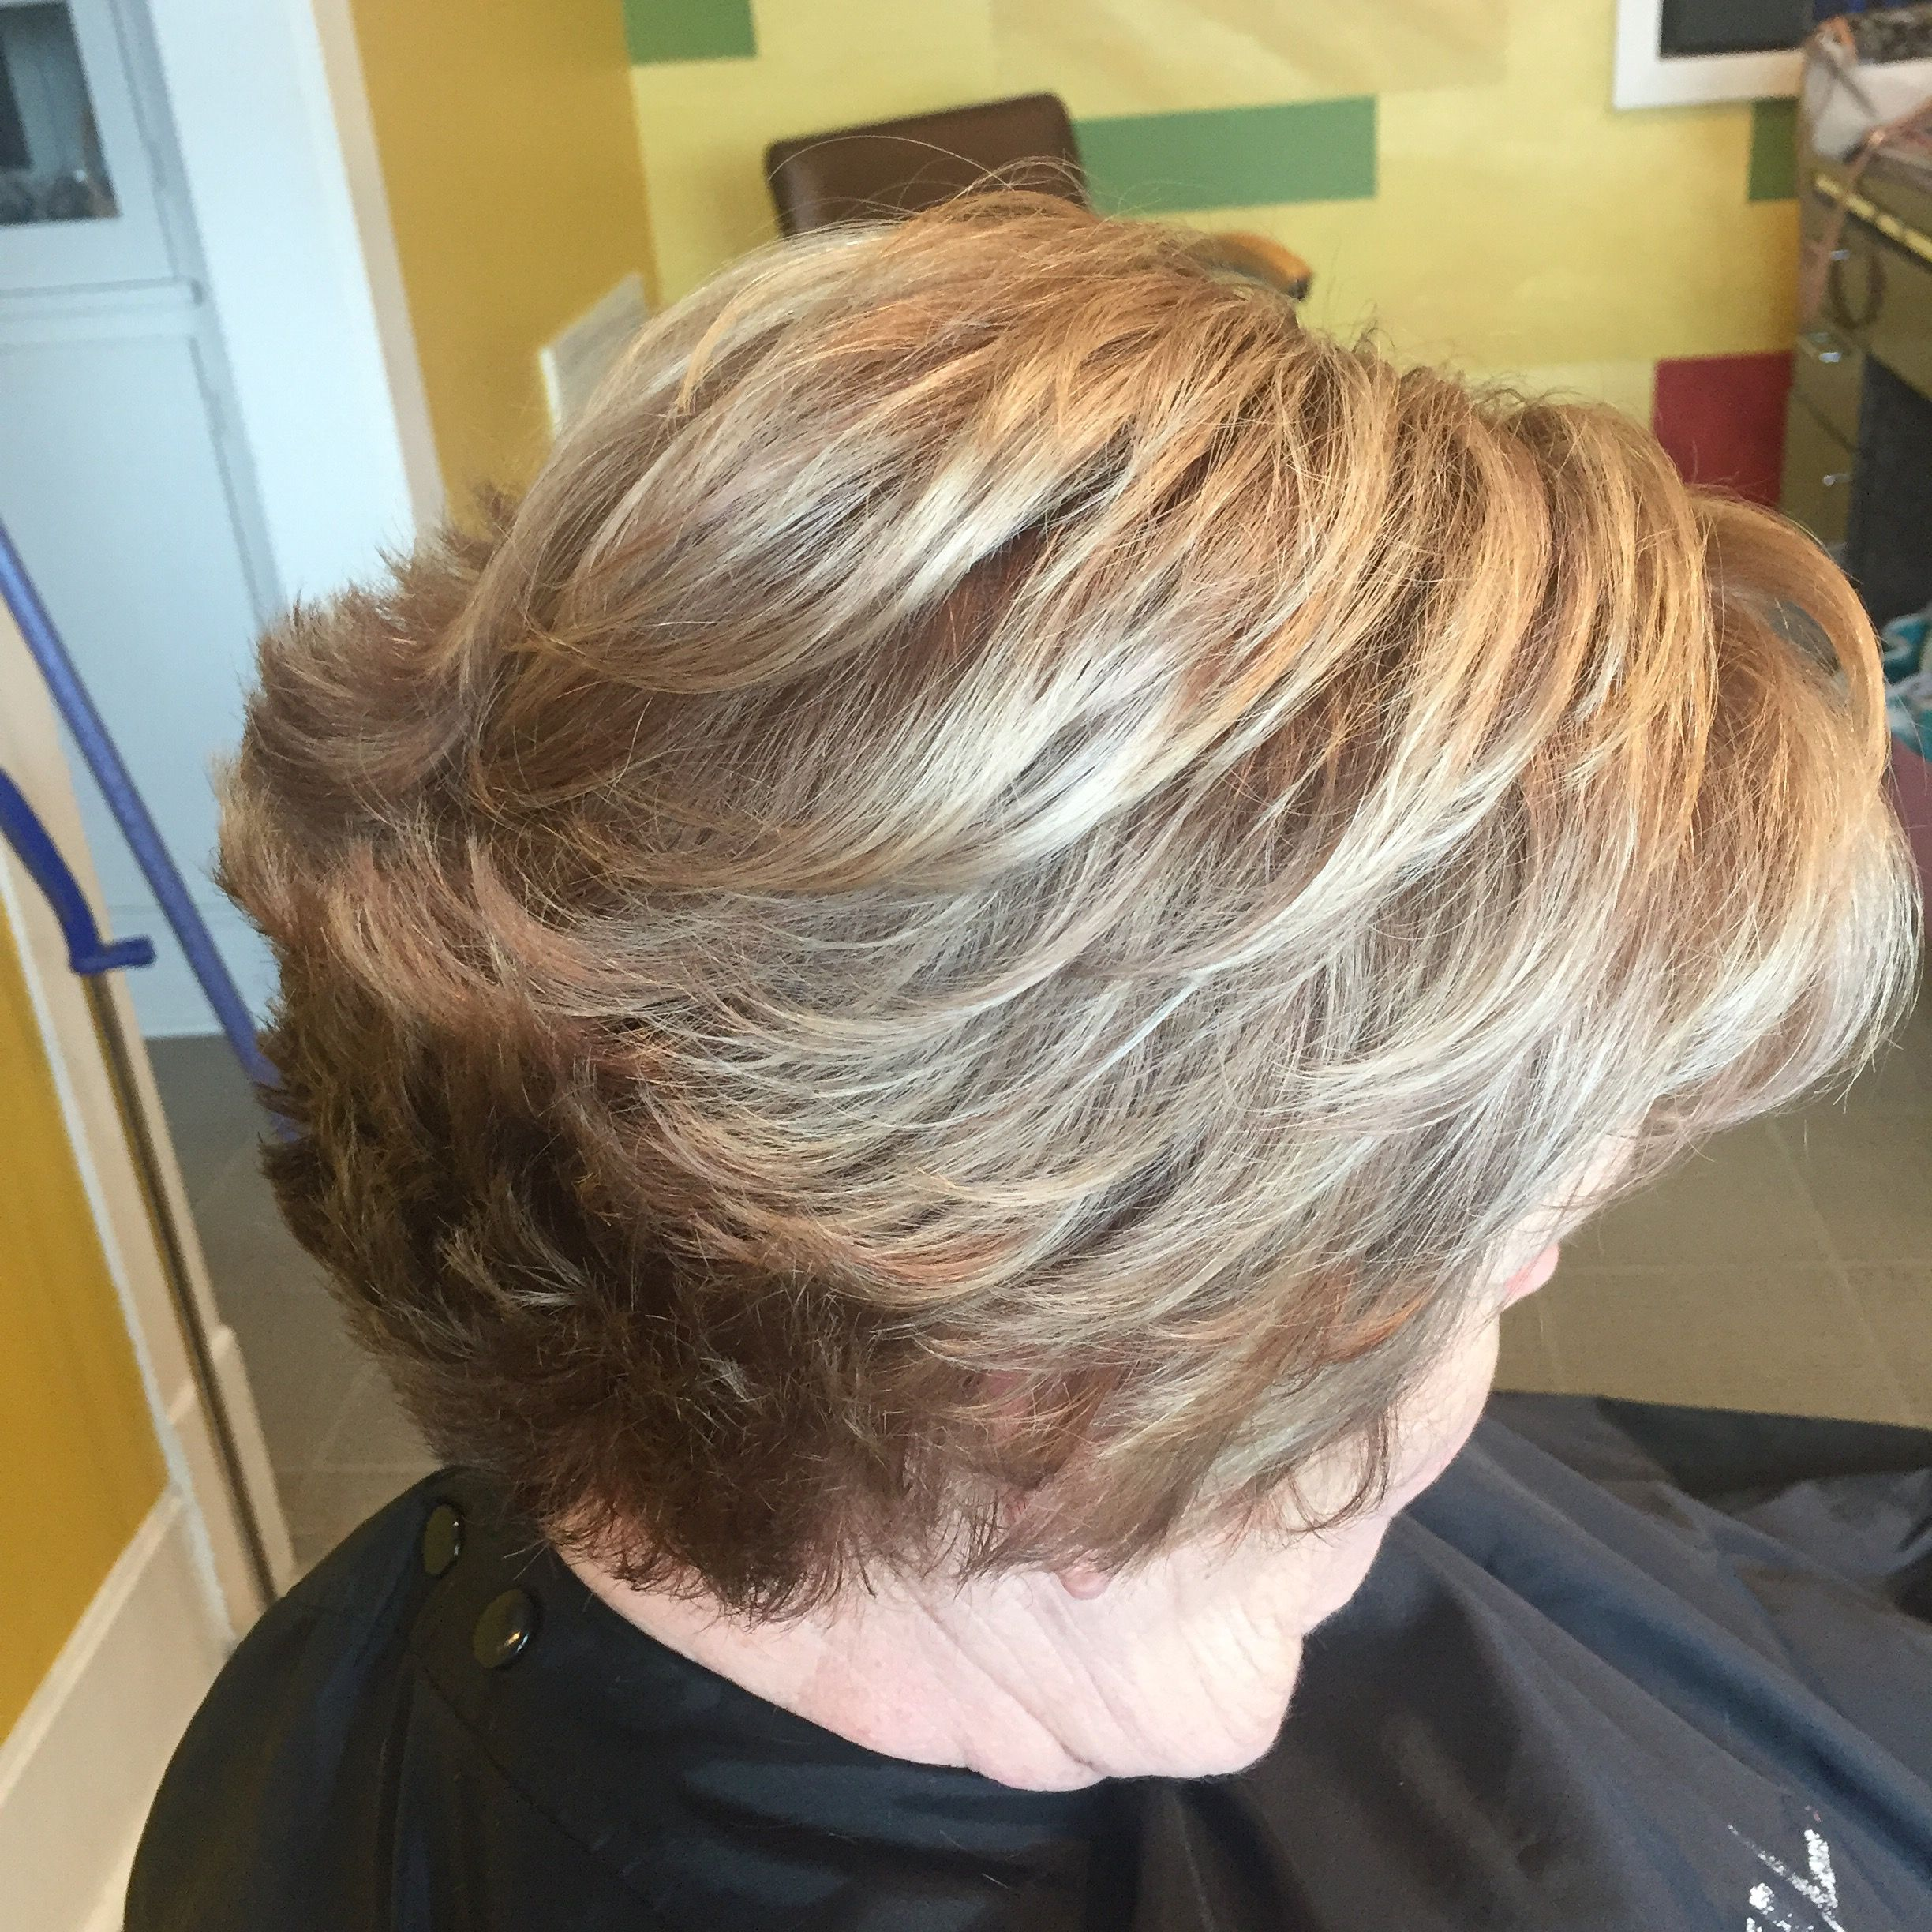 Blonde Haircolor With Short Stacked Haircut By Lauren Woodham